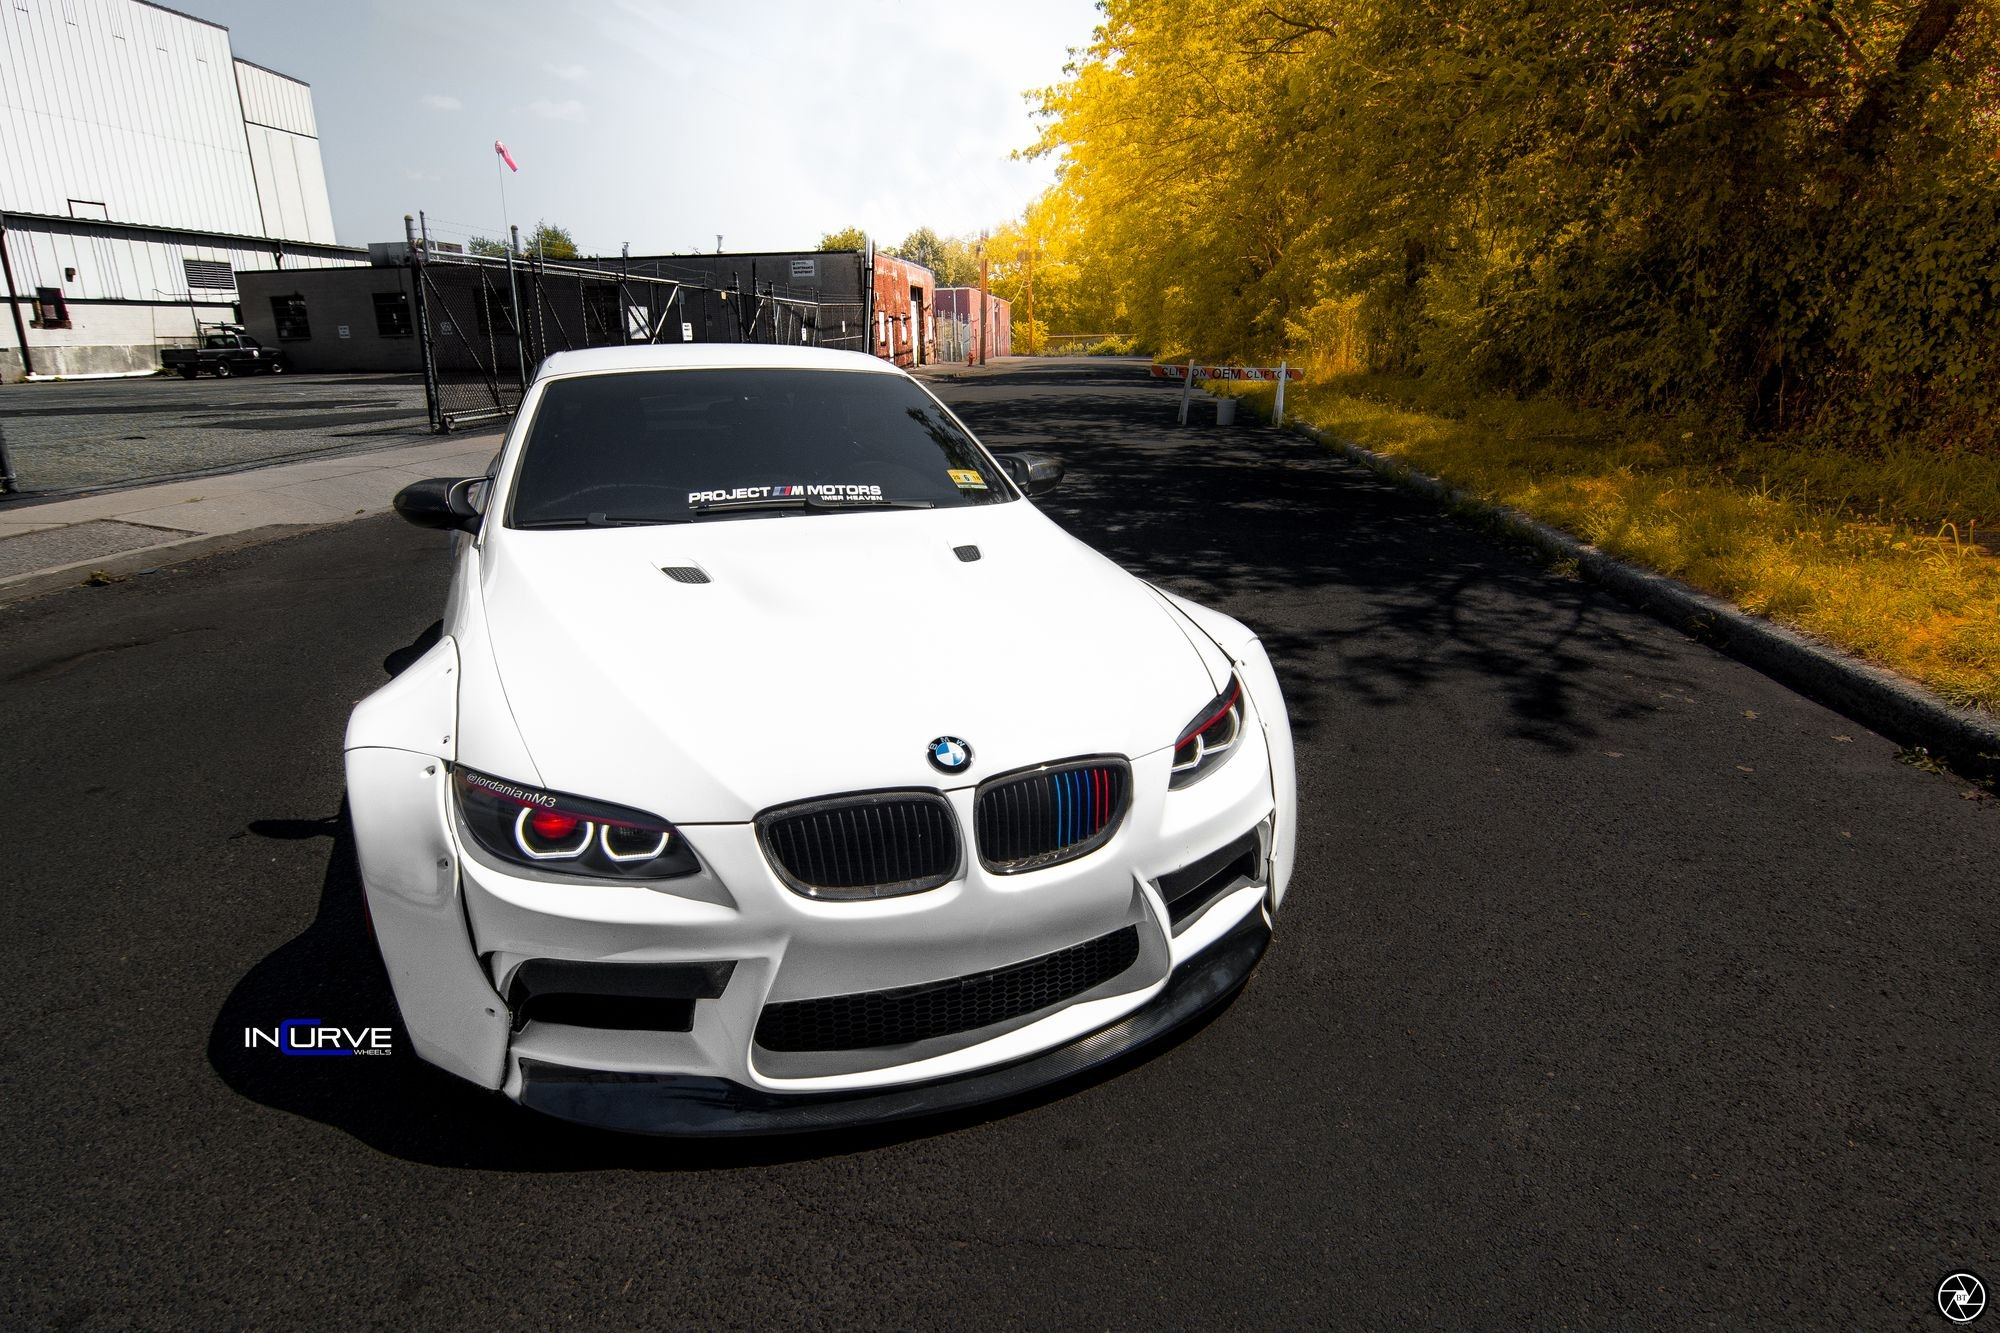 Jdm All The Way Customized White Bmw 3 Series Carid Com Gallery